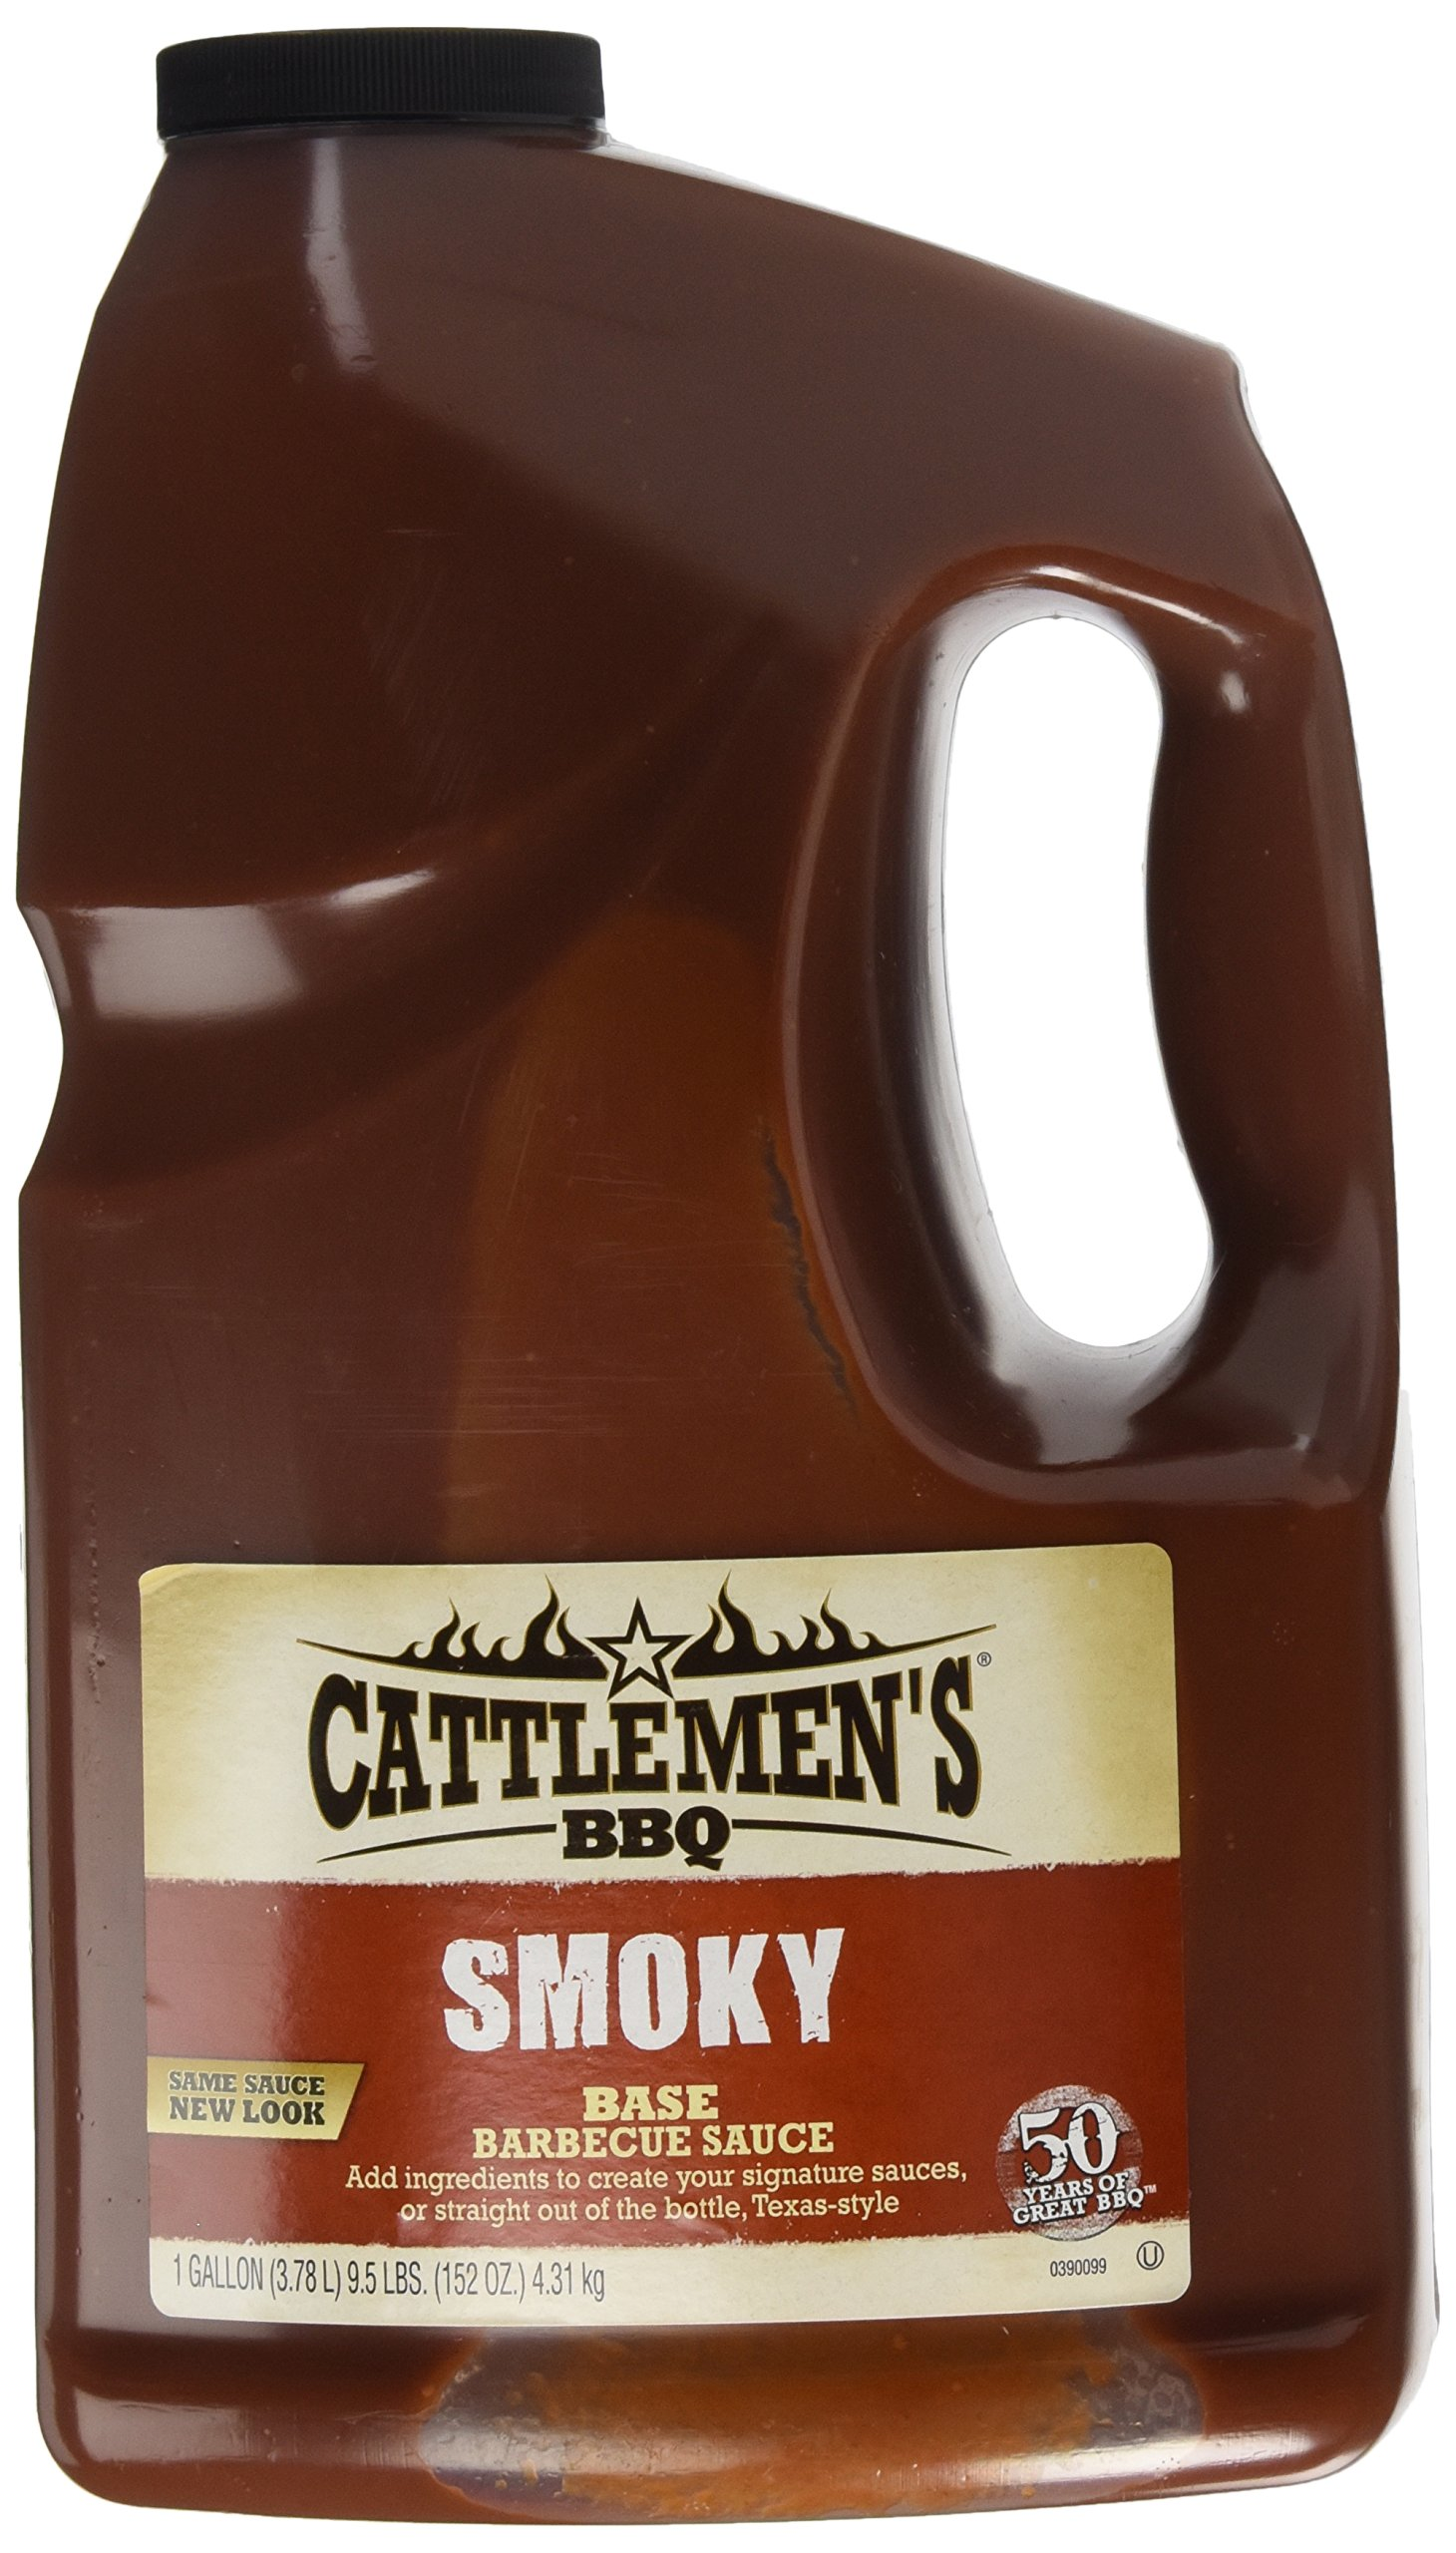 Cattlemen's Smoky Barbecue Sauce - 1Gal 10